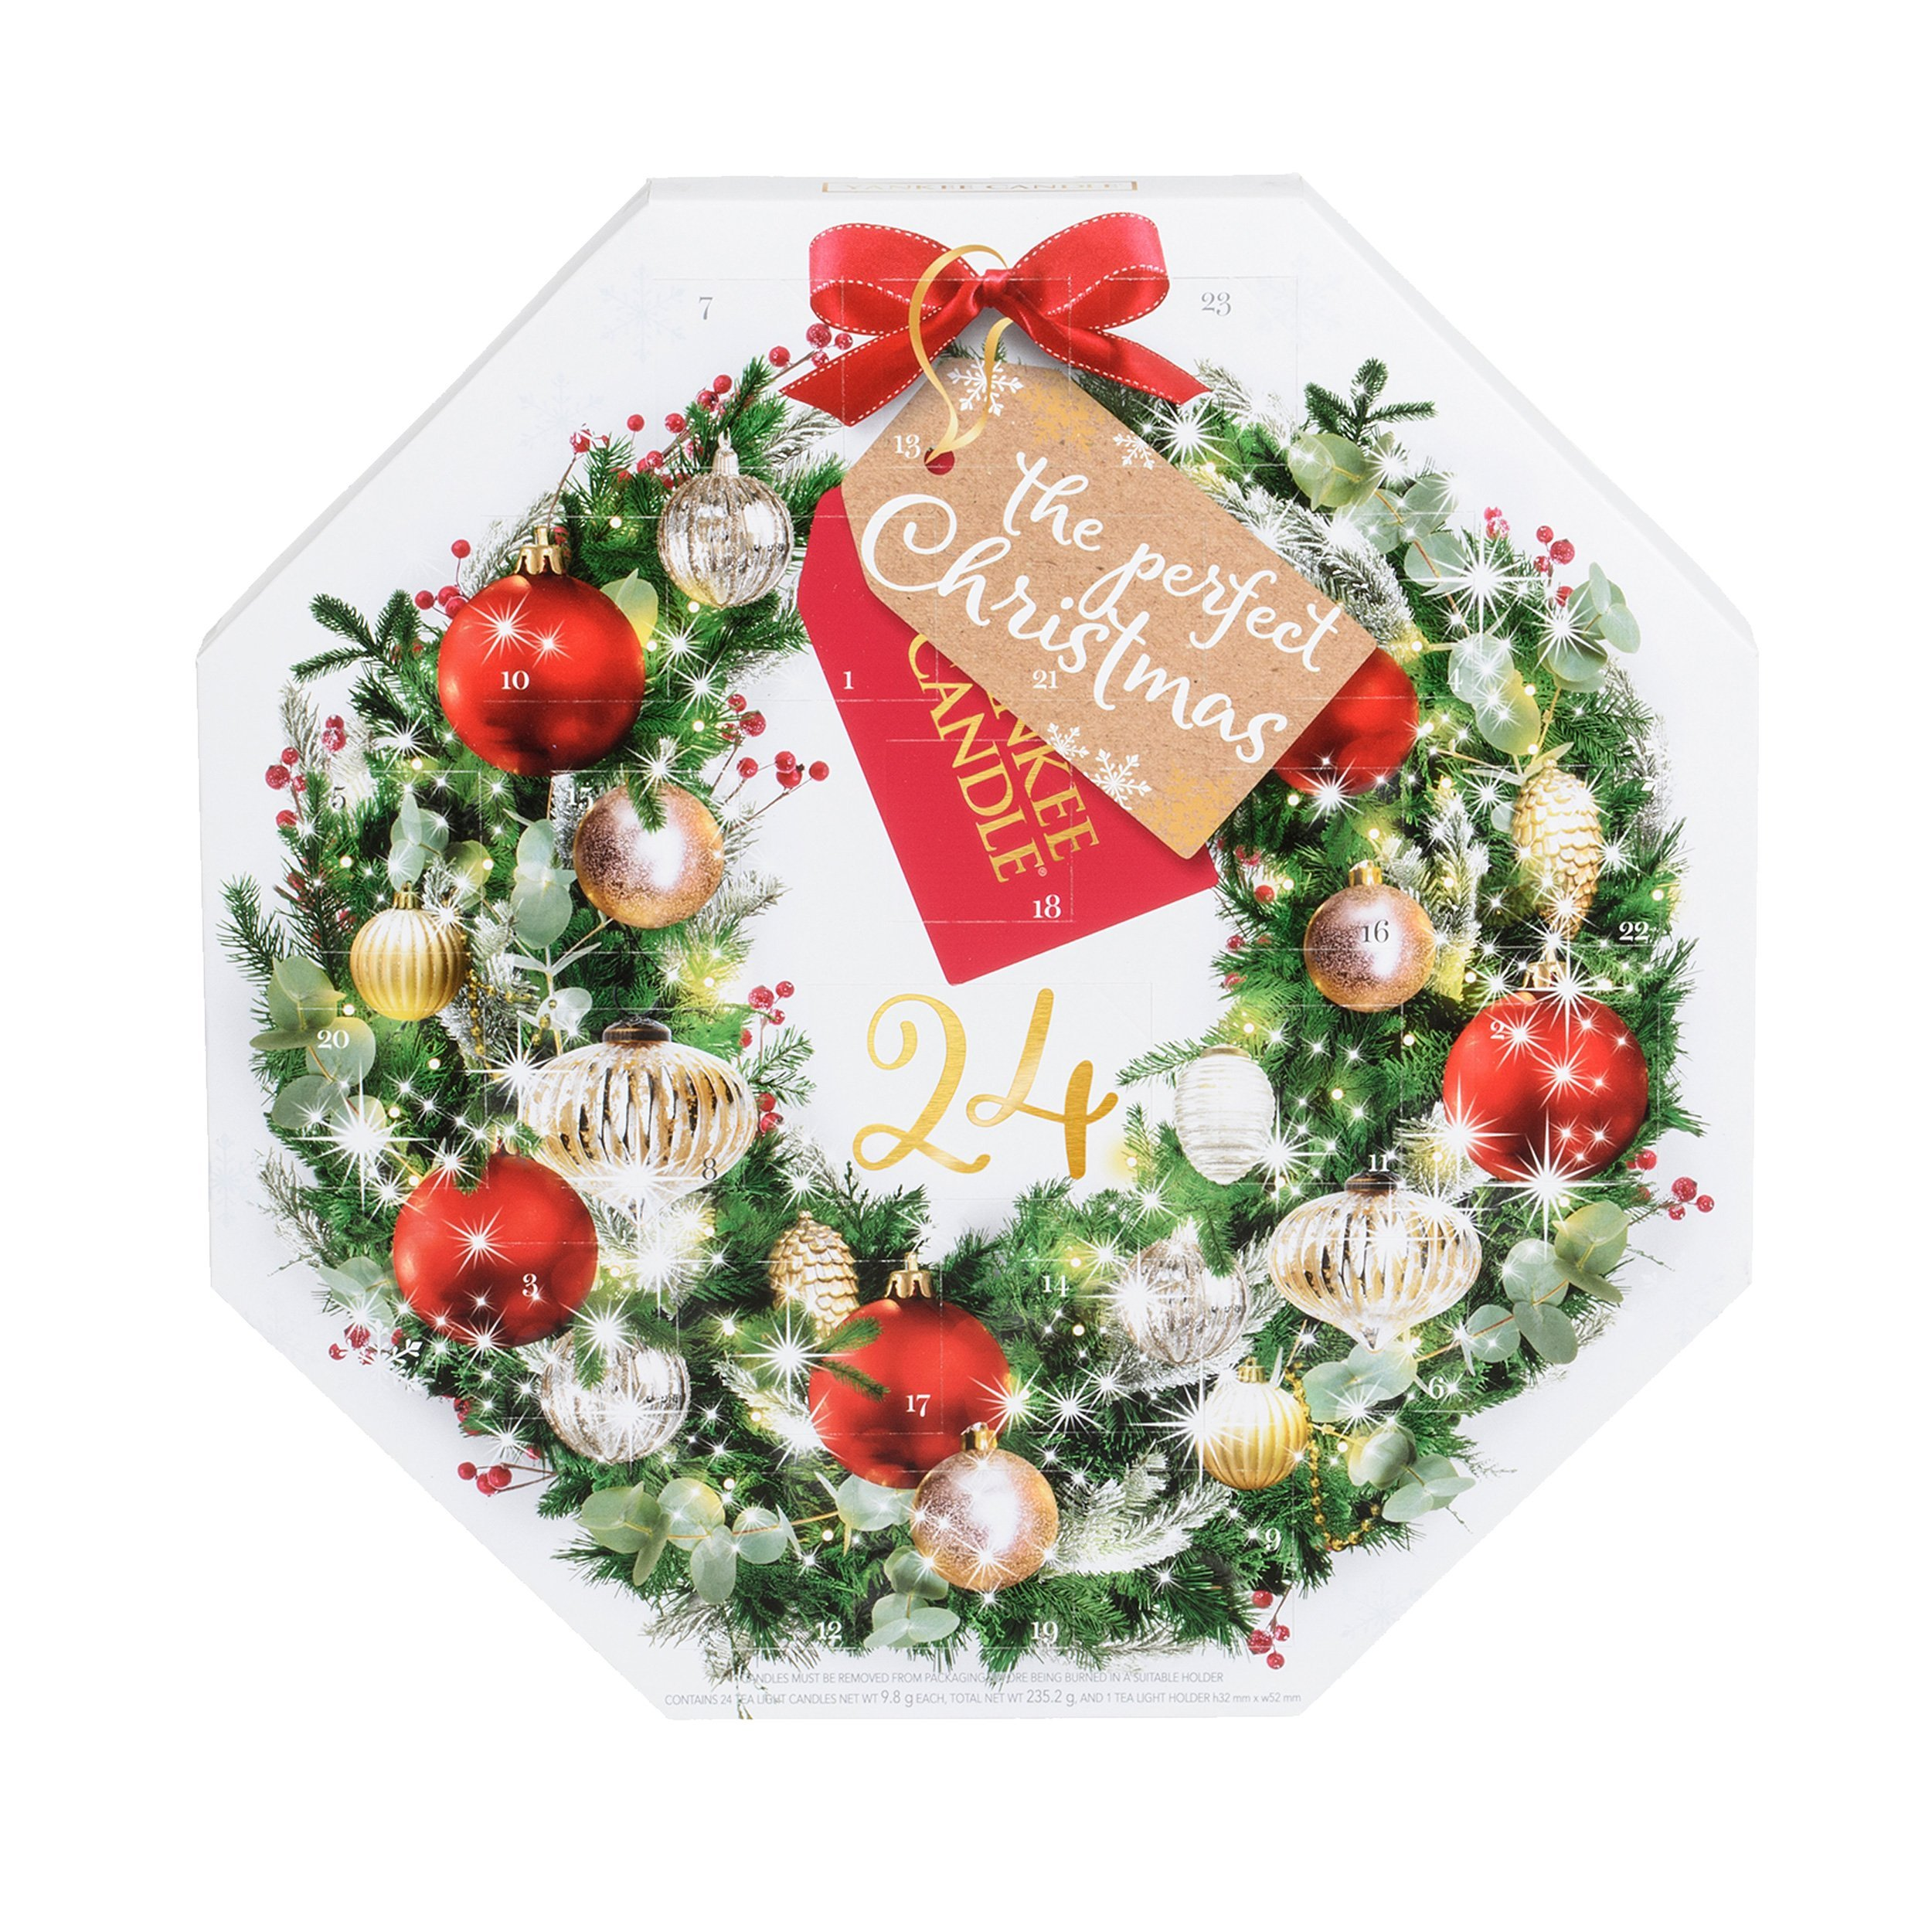 Yankee Candle Advent Calendar 2017 Wreath Scented Tea Light Candles Set